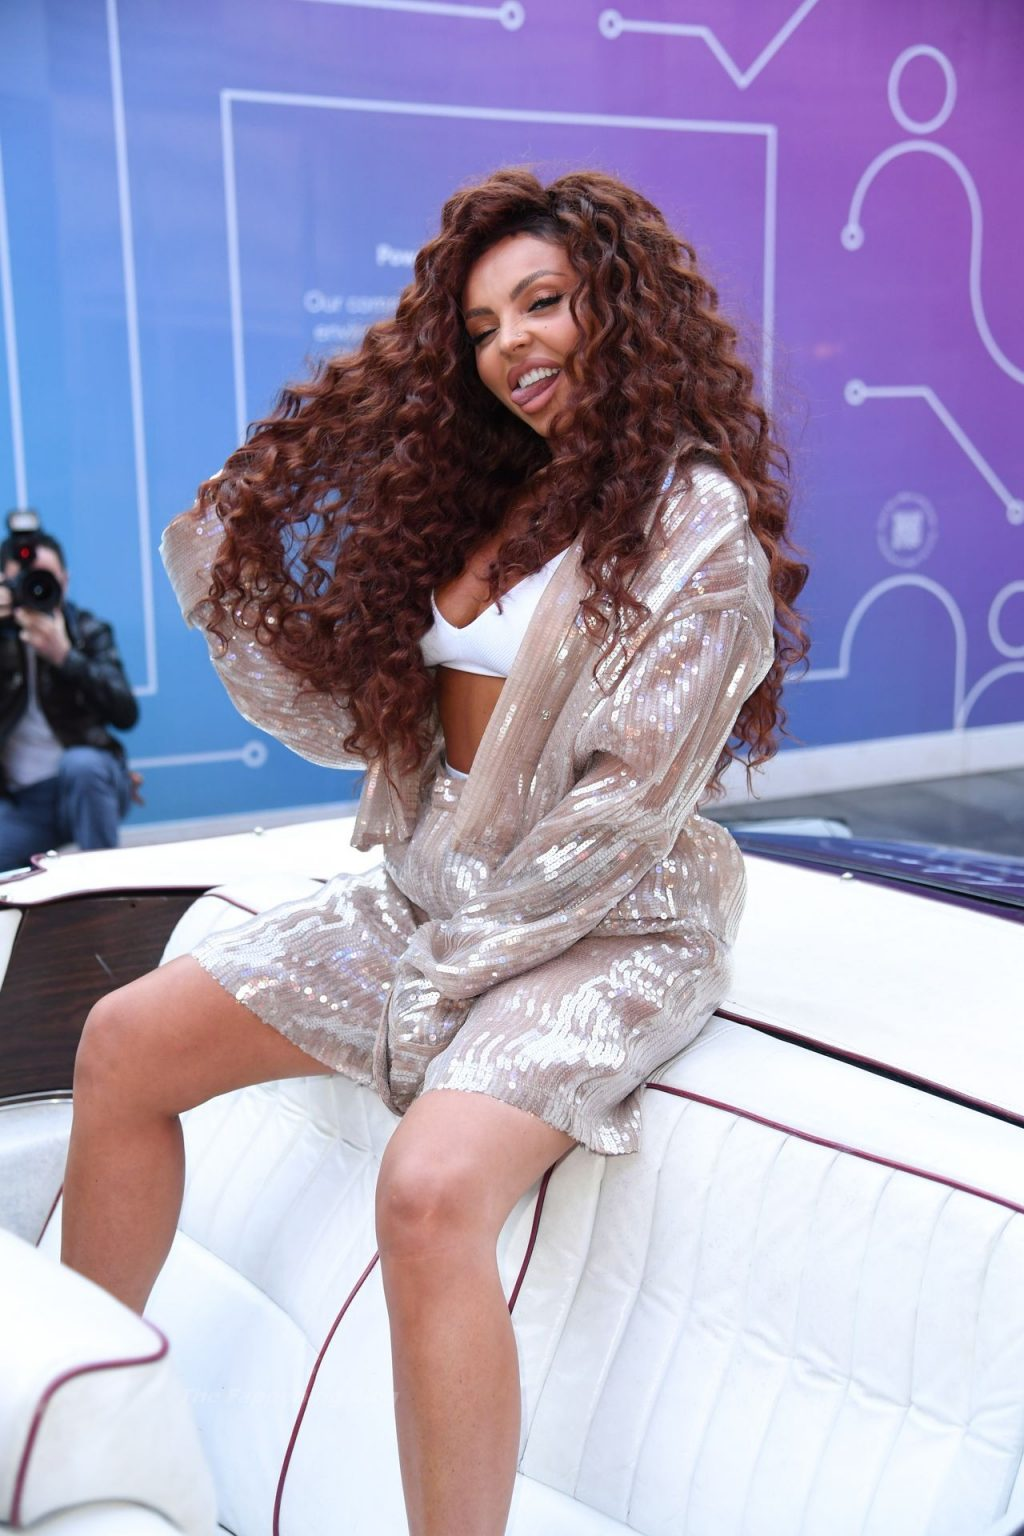 Jesy Nelson Looks Hot in a Revealing Outfit After Releasing Her First Solo Single (139 Photos)